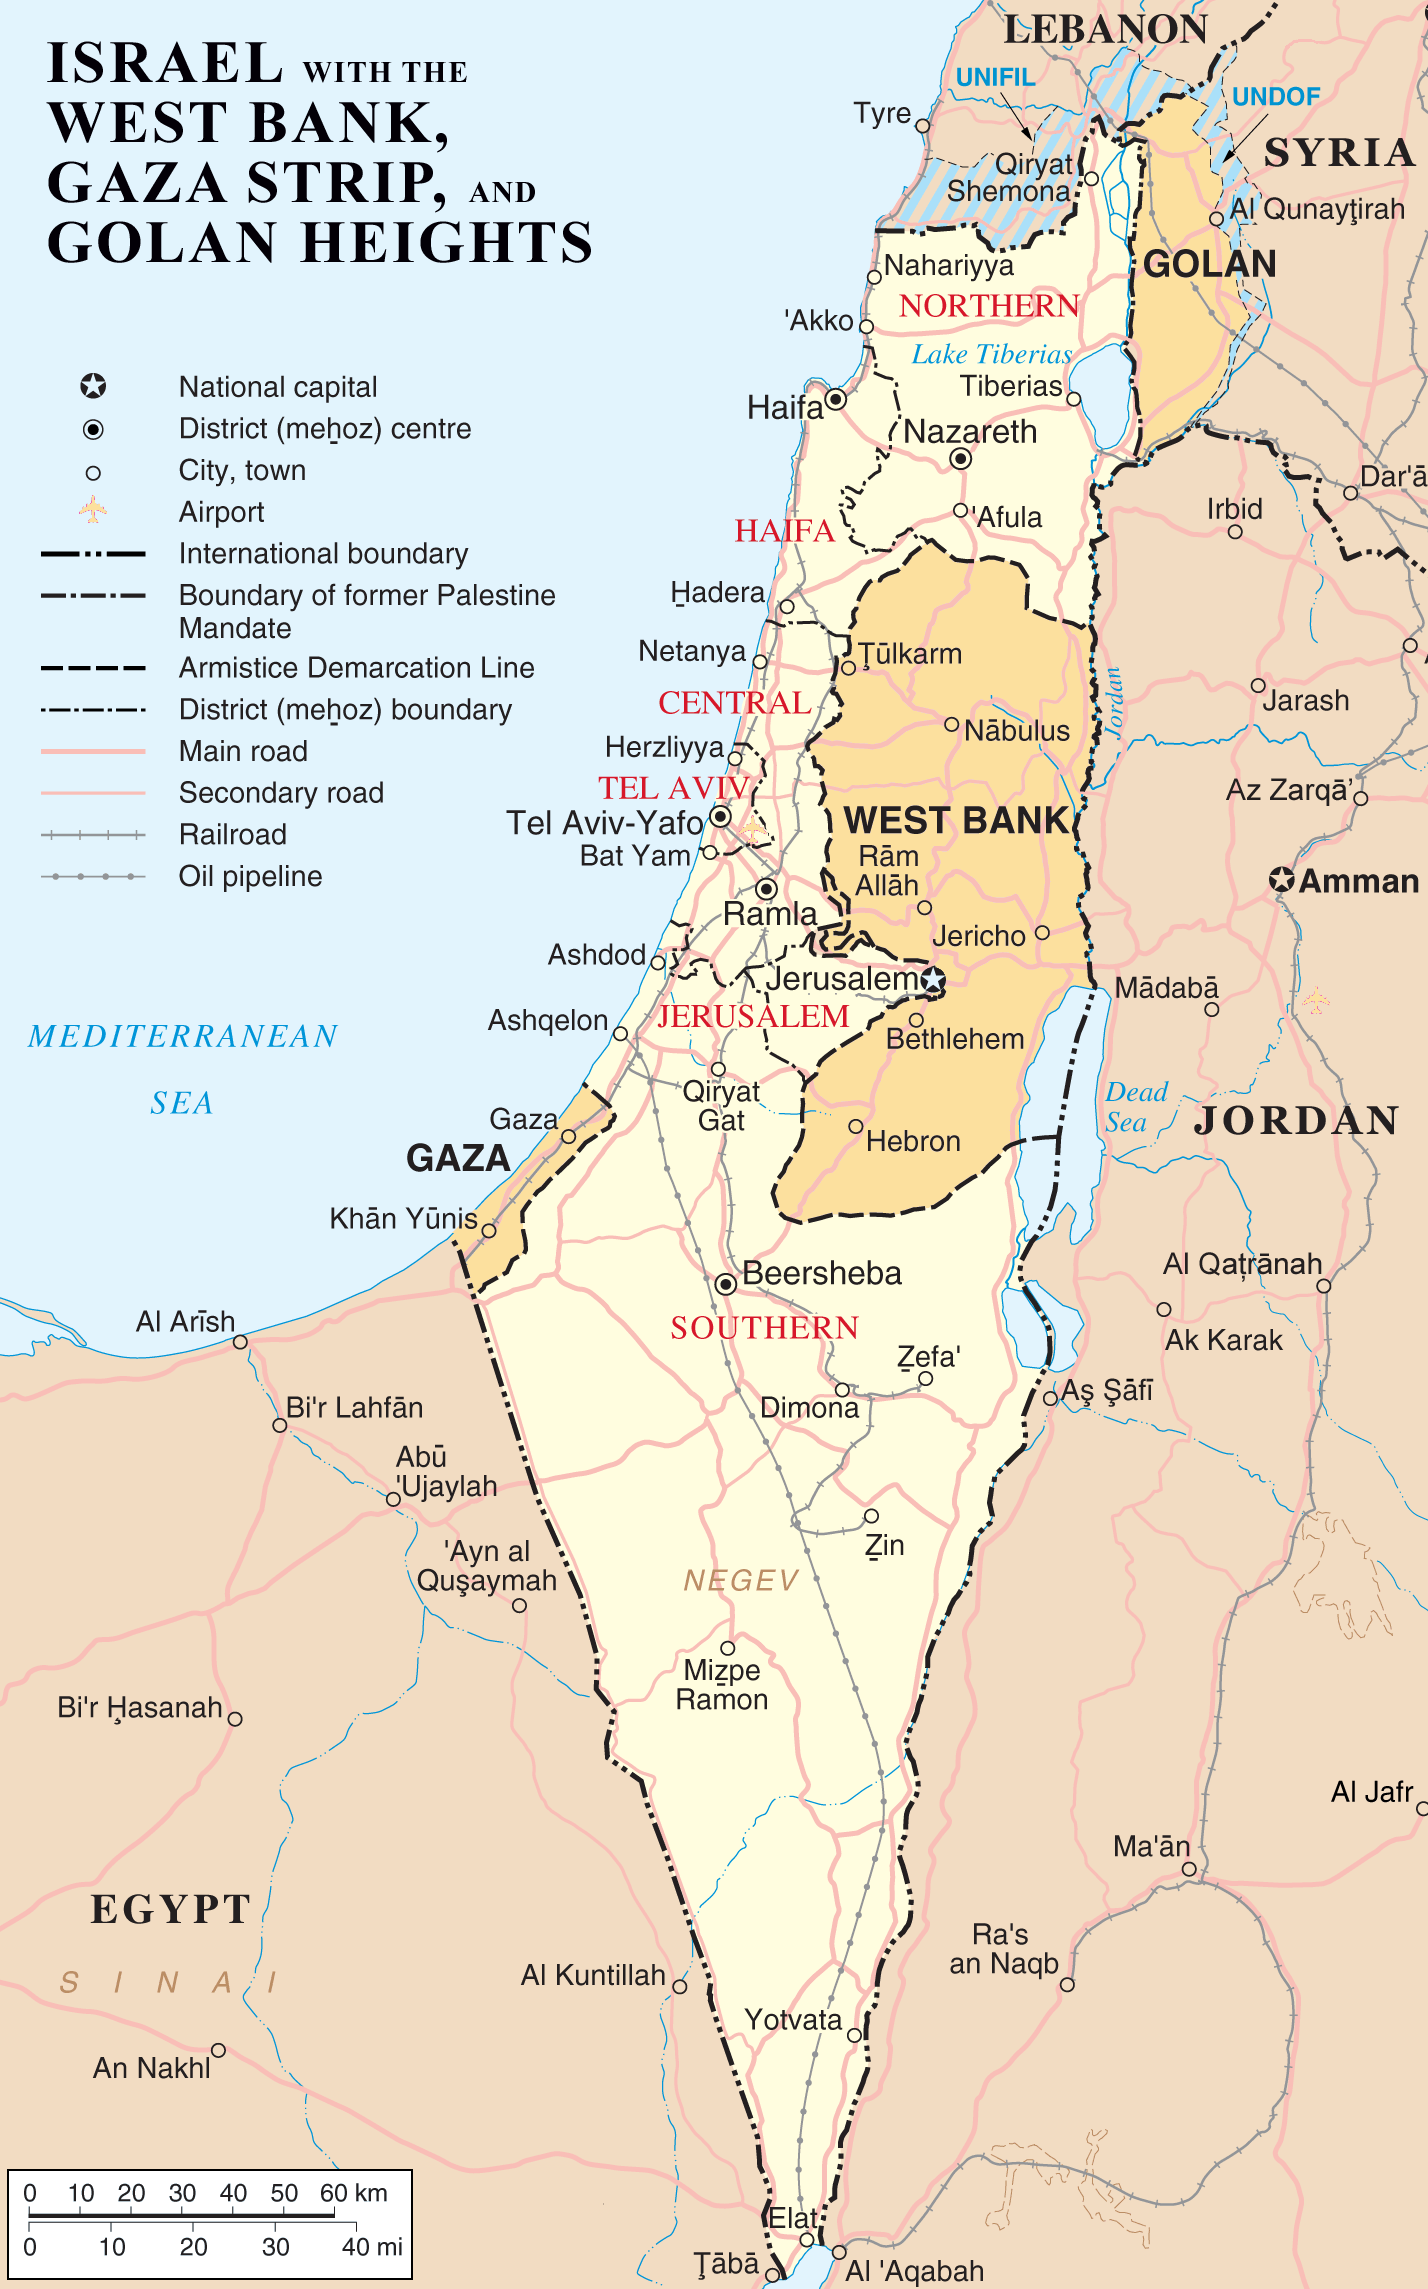 bible gaza strip jpg 422x640